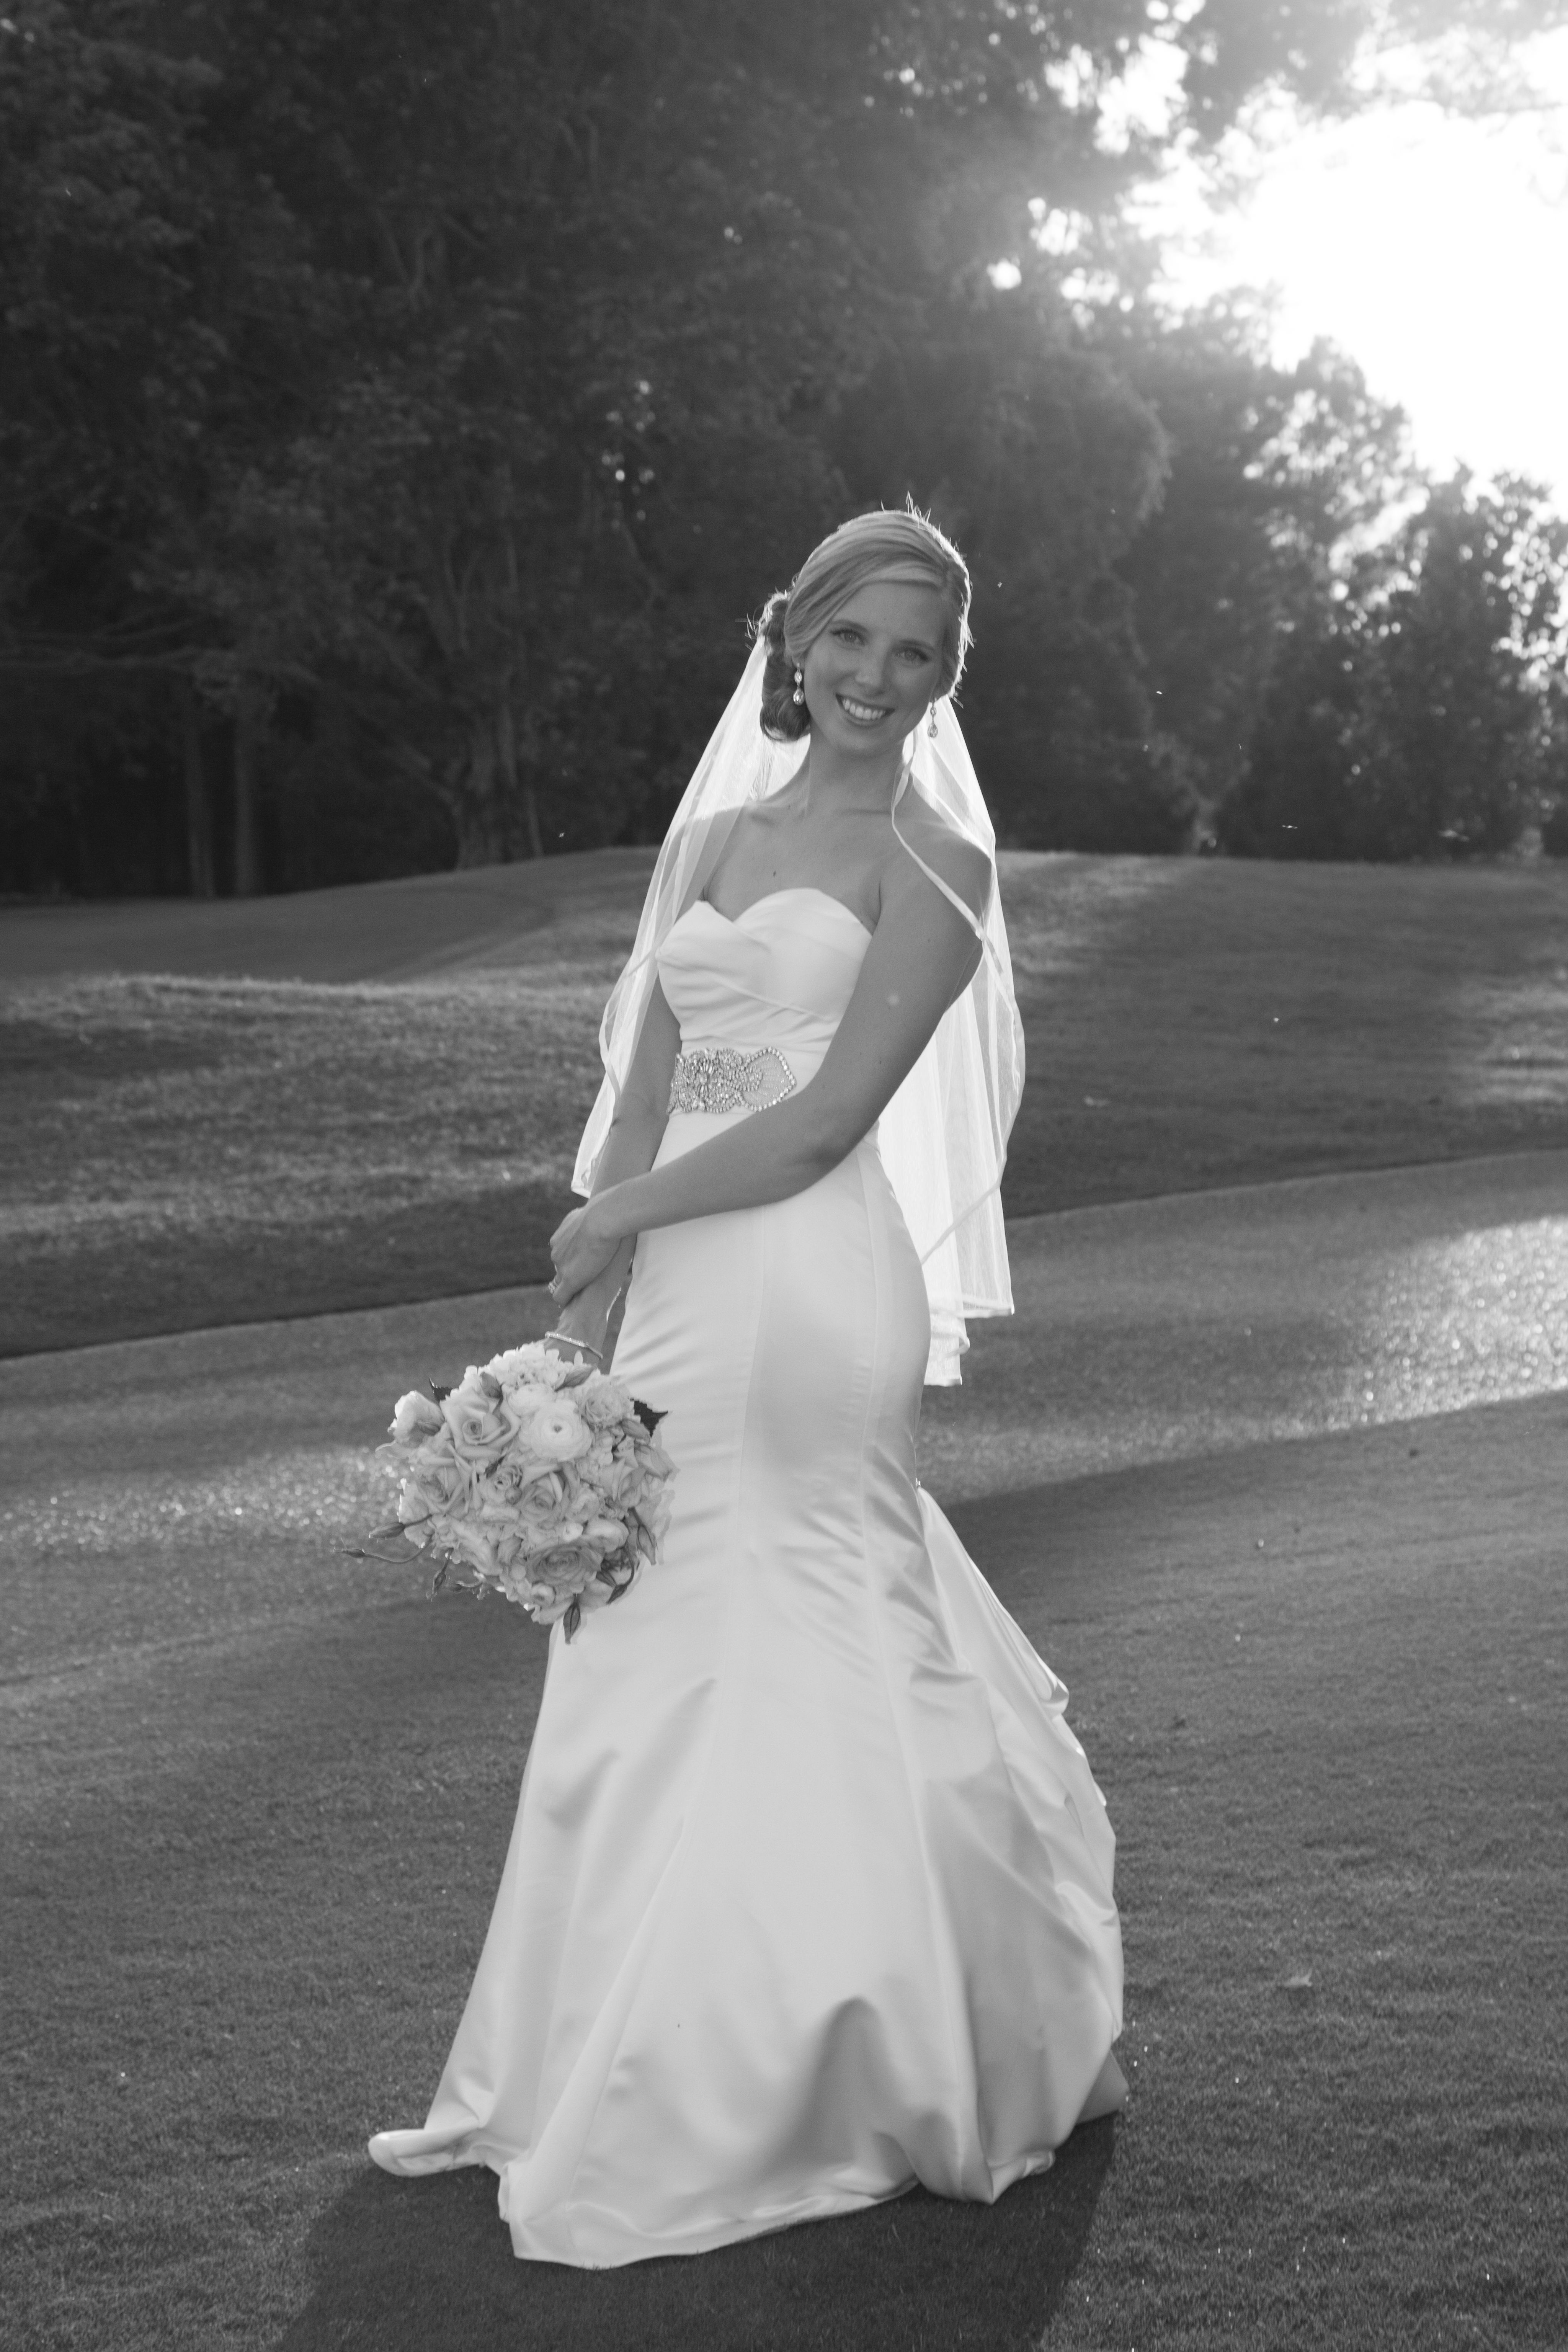 Seams Bride Katie Wore A Wedding Gown On Her Big Day Custom Altered By Claudia Of Alterations Photograph Courtesy